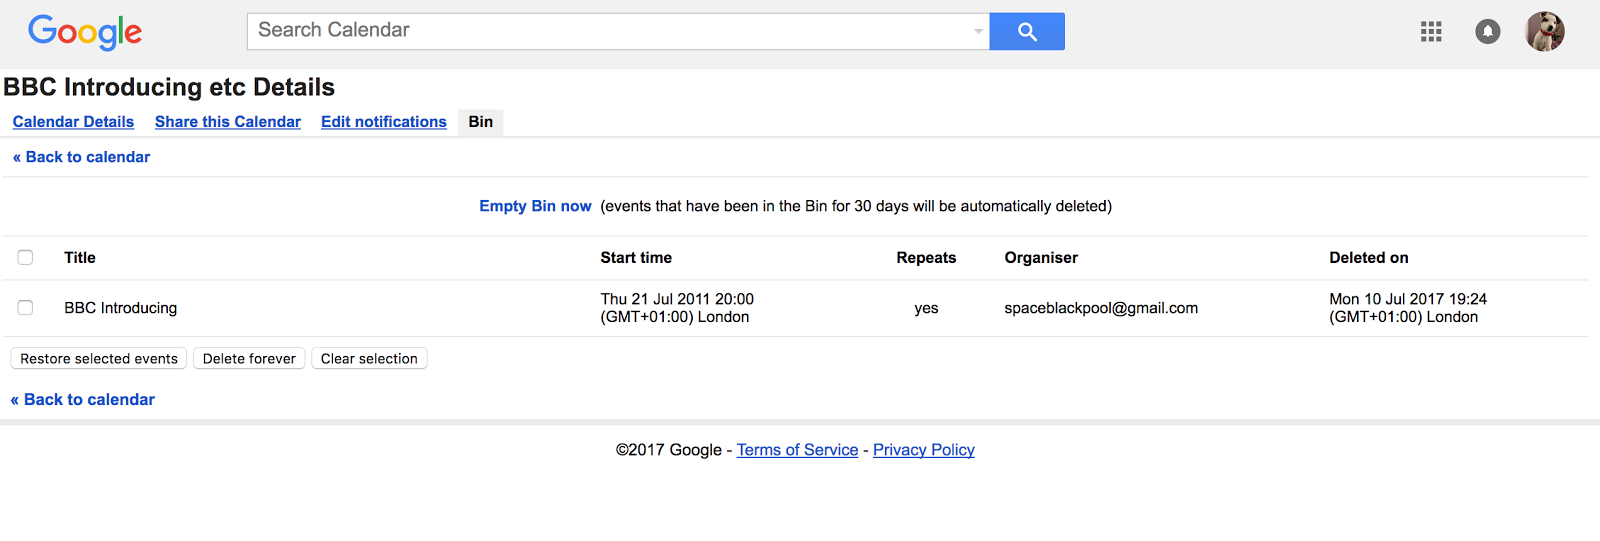 I Can't Undelete A Recurring Calendar Event  Calendar Help within How To Restore Deleted Google Calendar Events